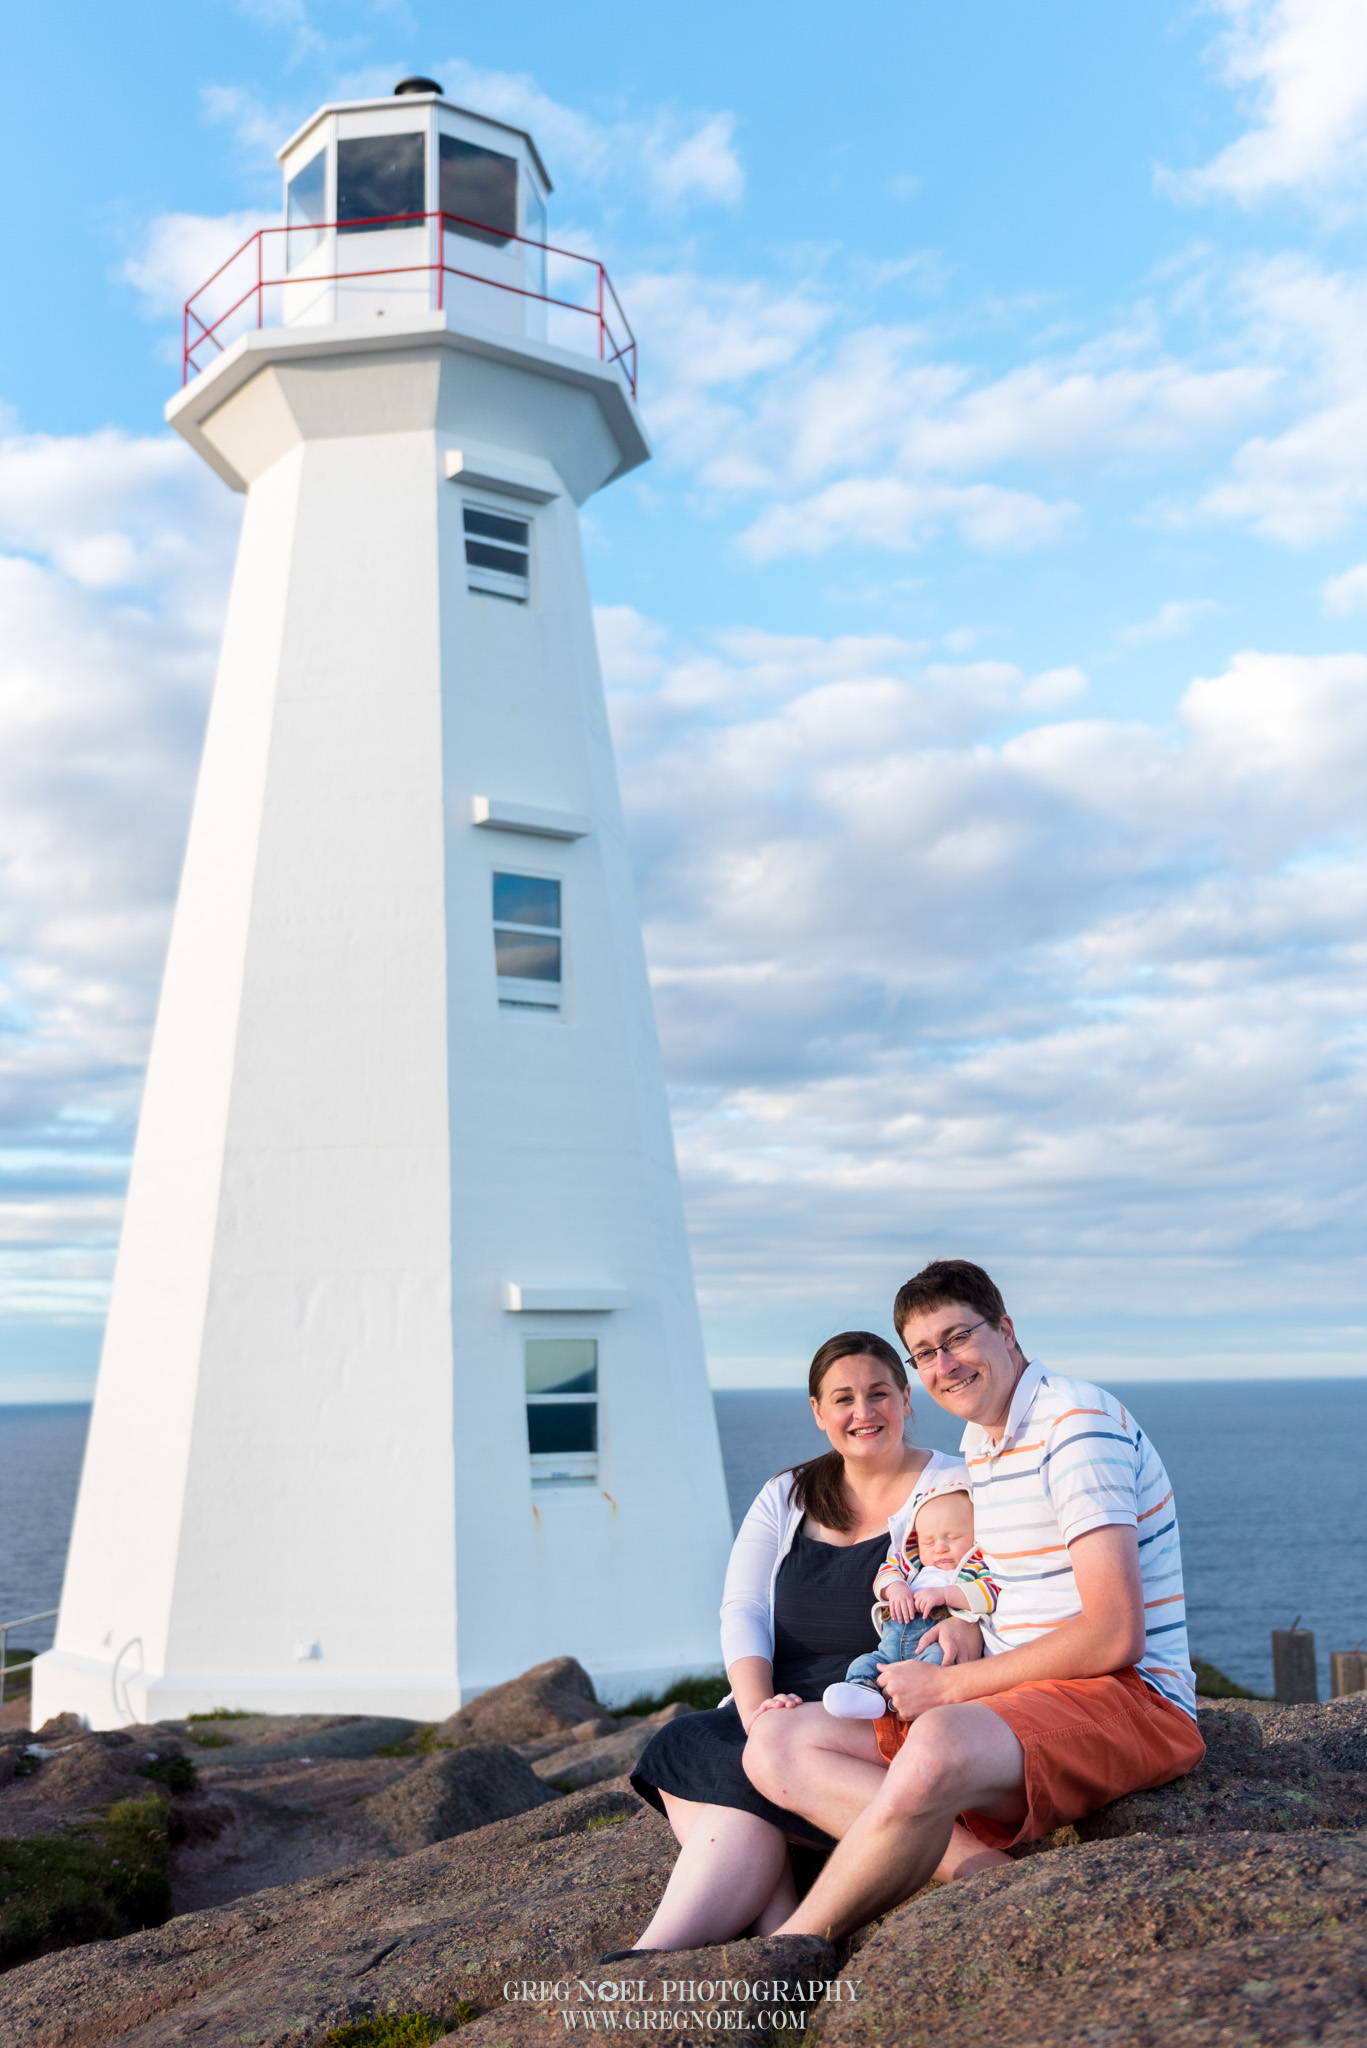 On location session at Cape Spear